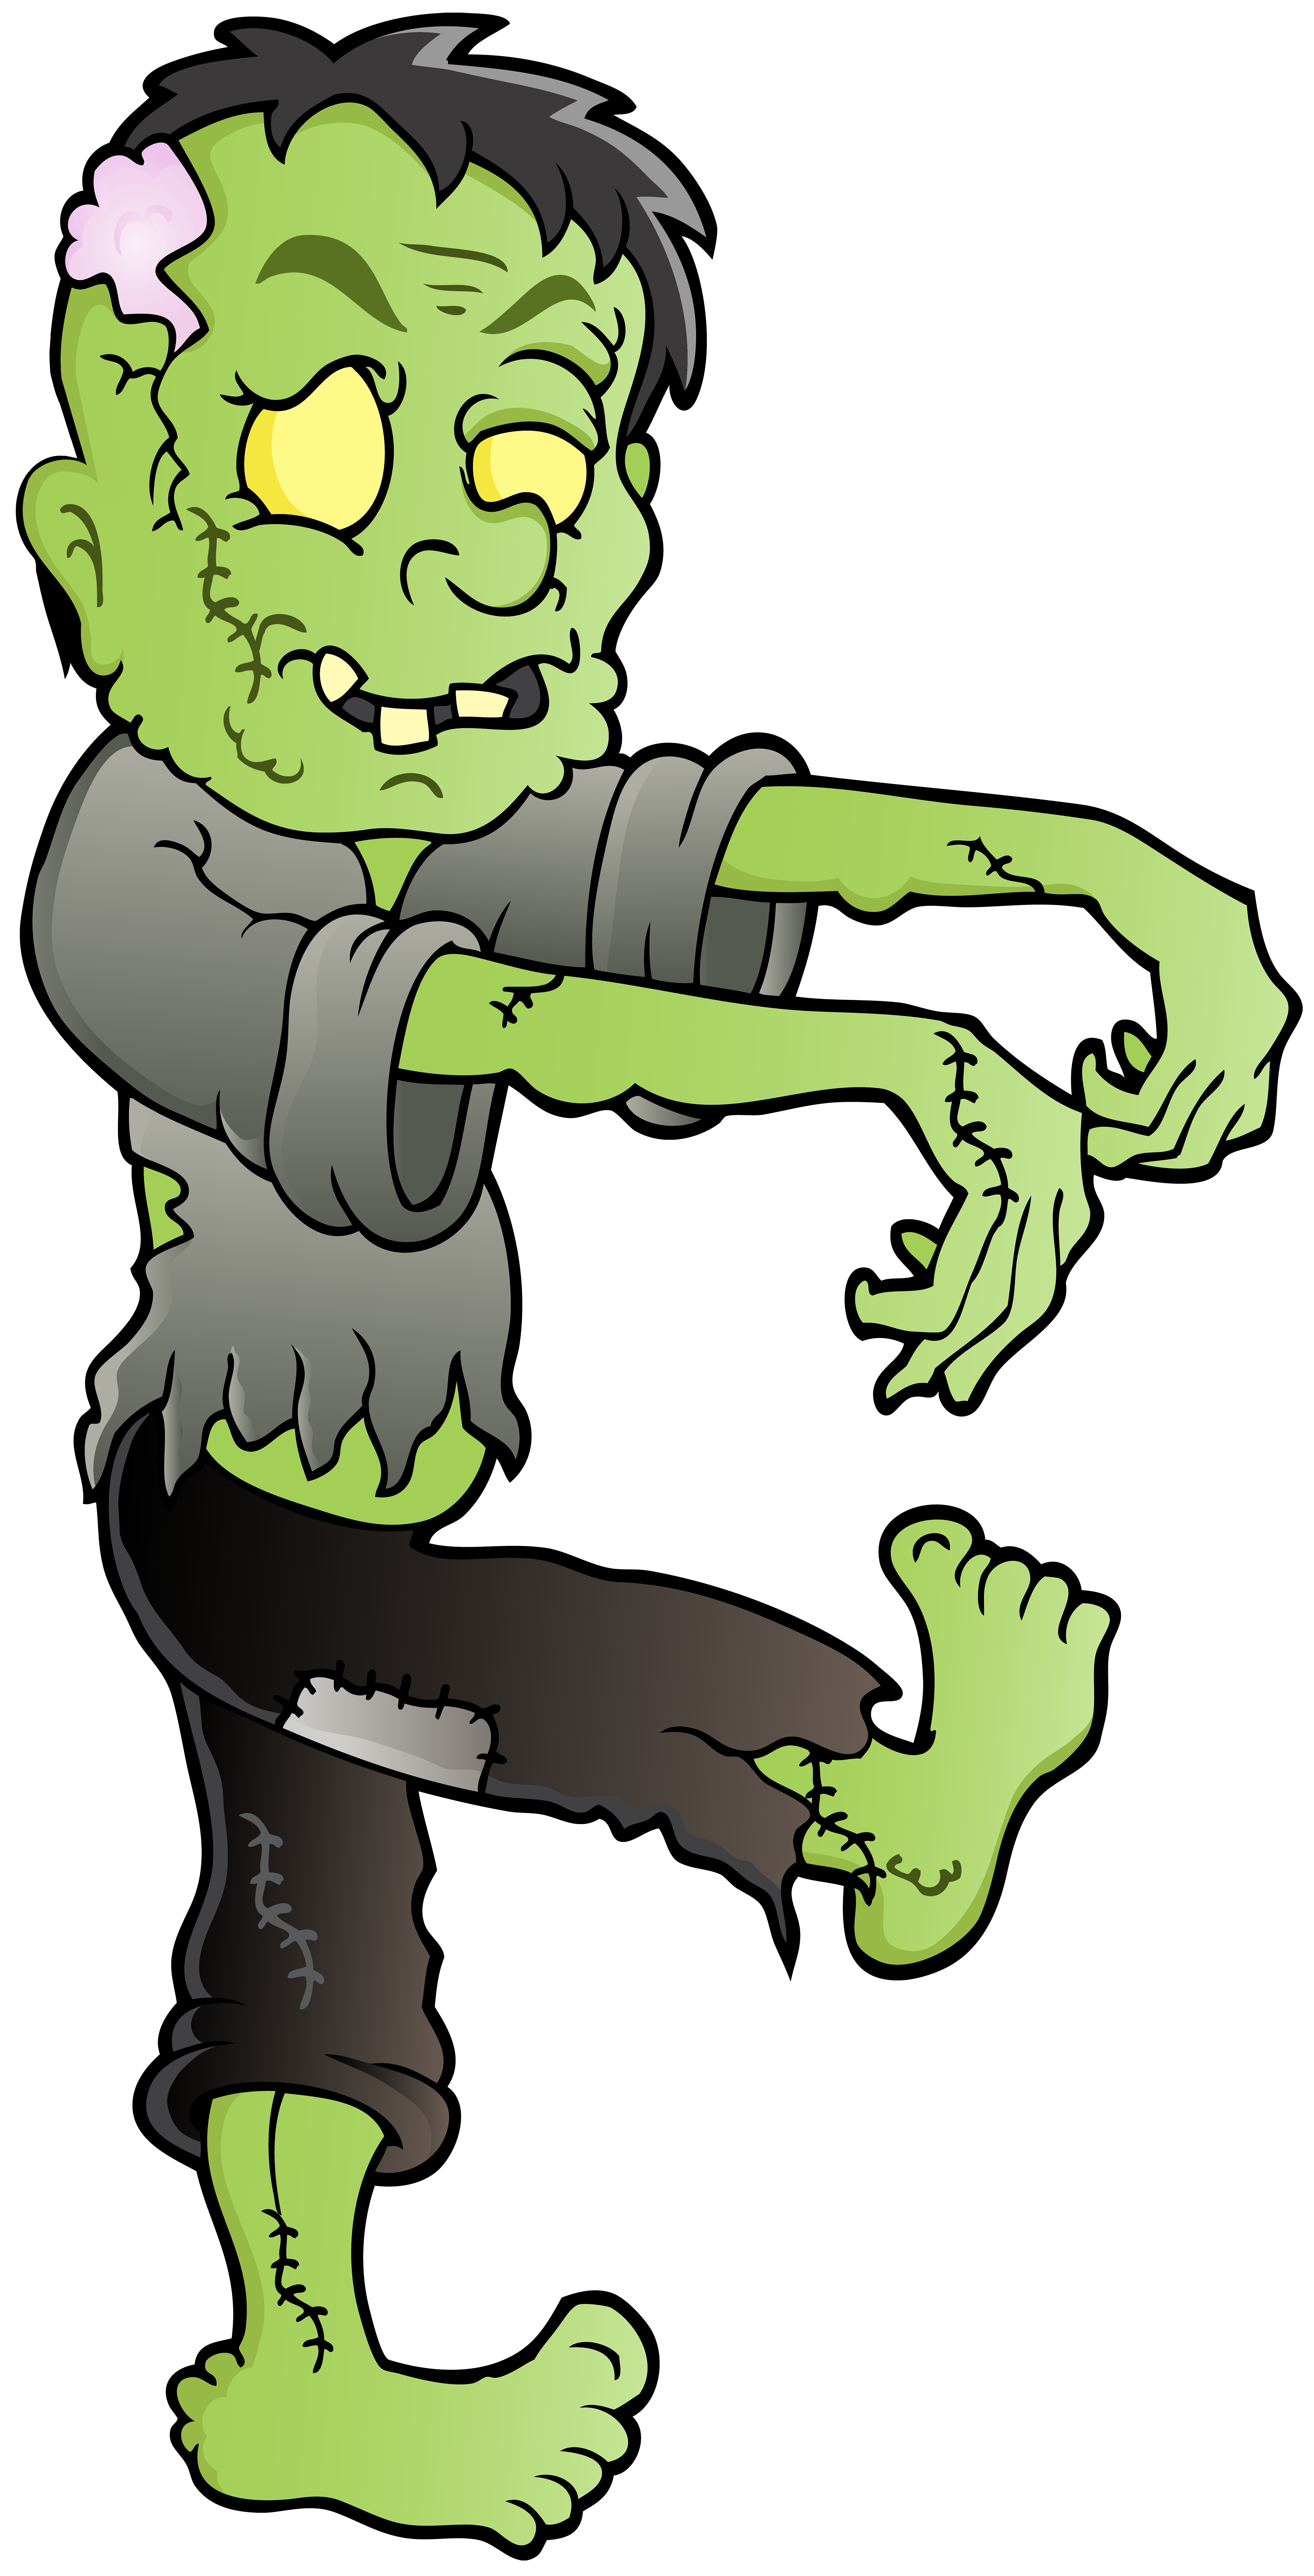 Zombie clipart halloween jpg library Zombie PNG Clip Art Image | Gallery Yopriceville - High ... jpg library